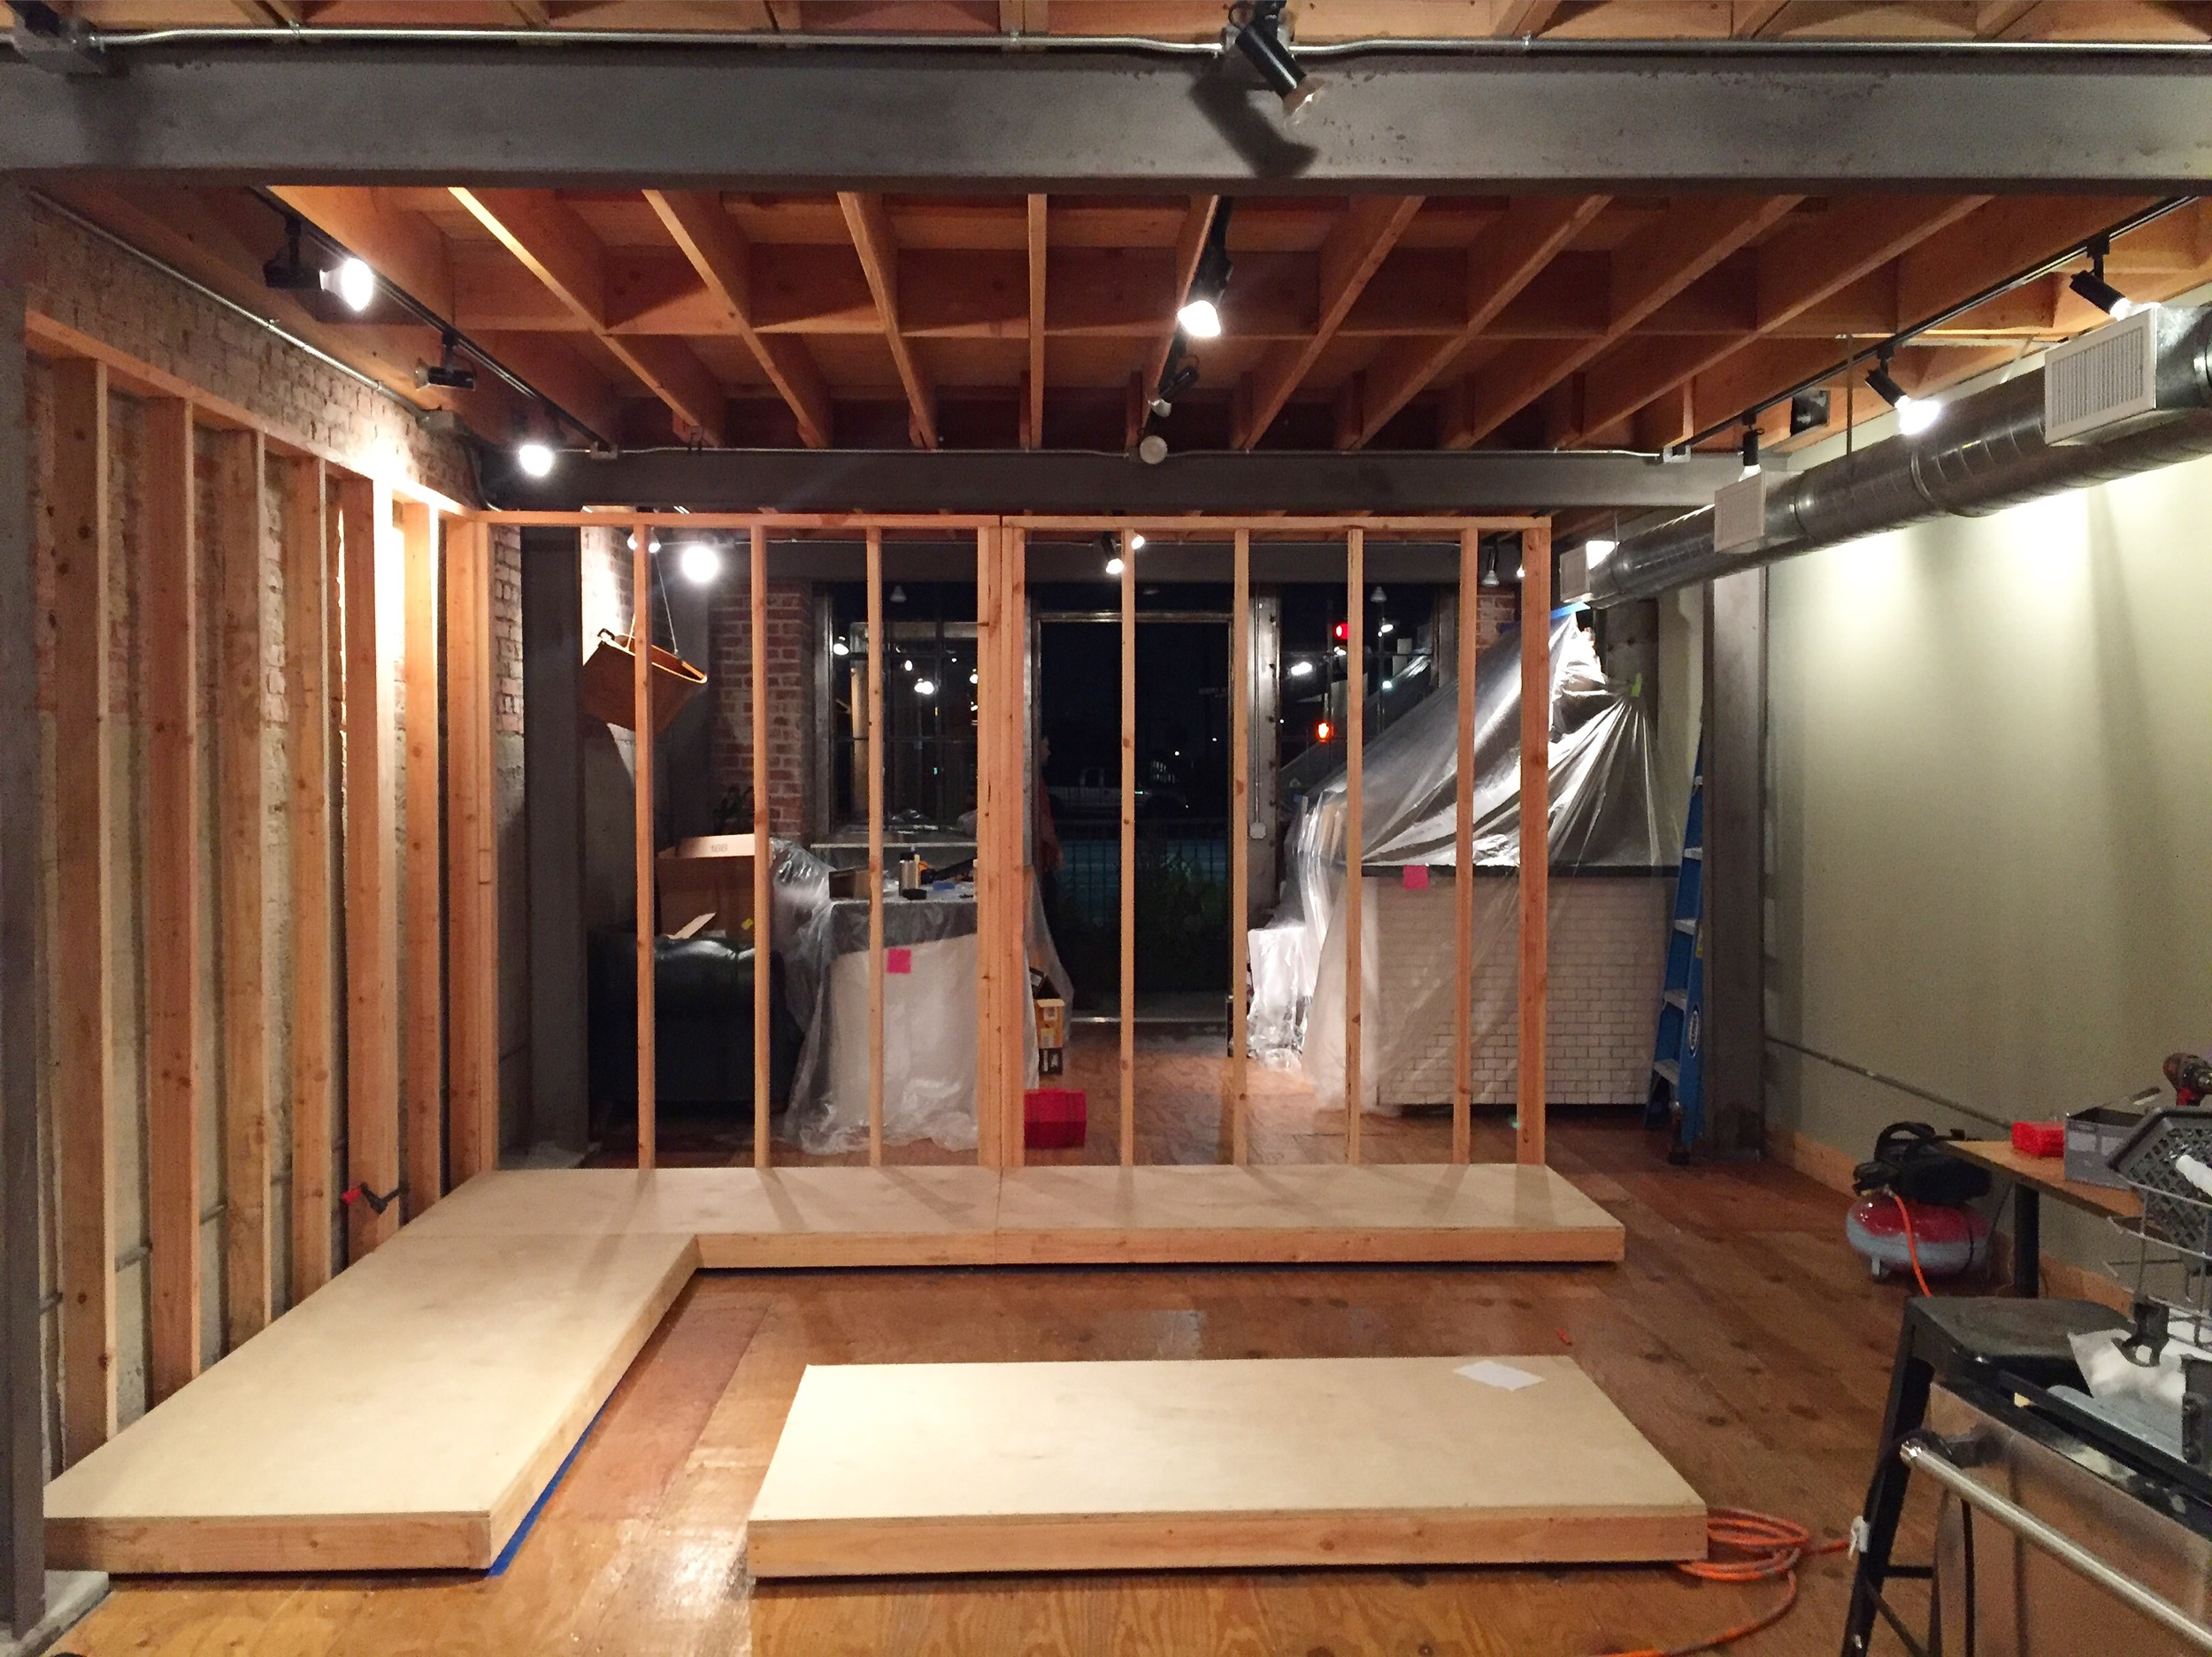 Day one:mobile units sized and assembled, walls framed.